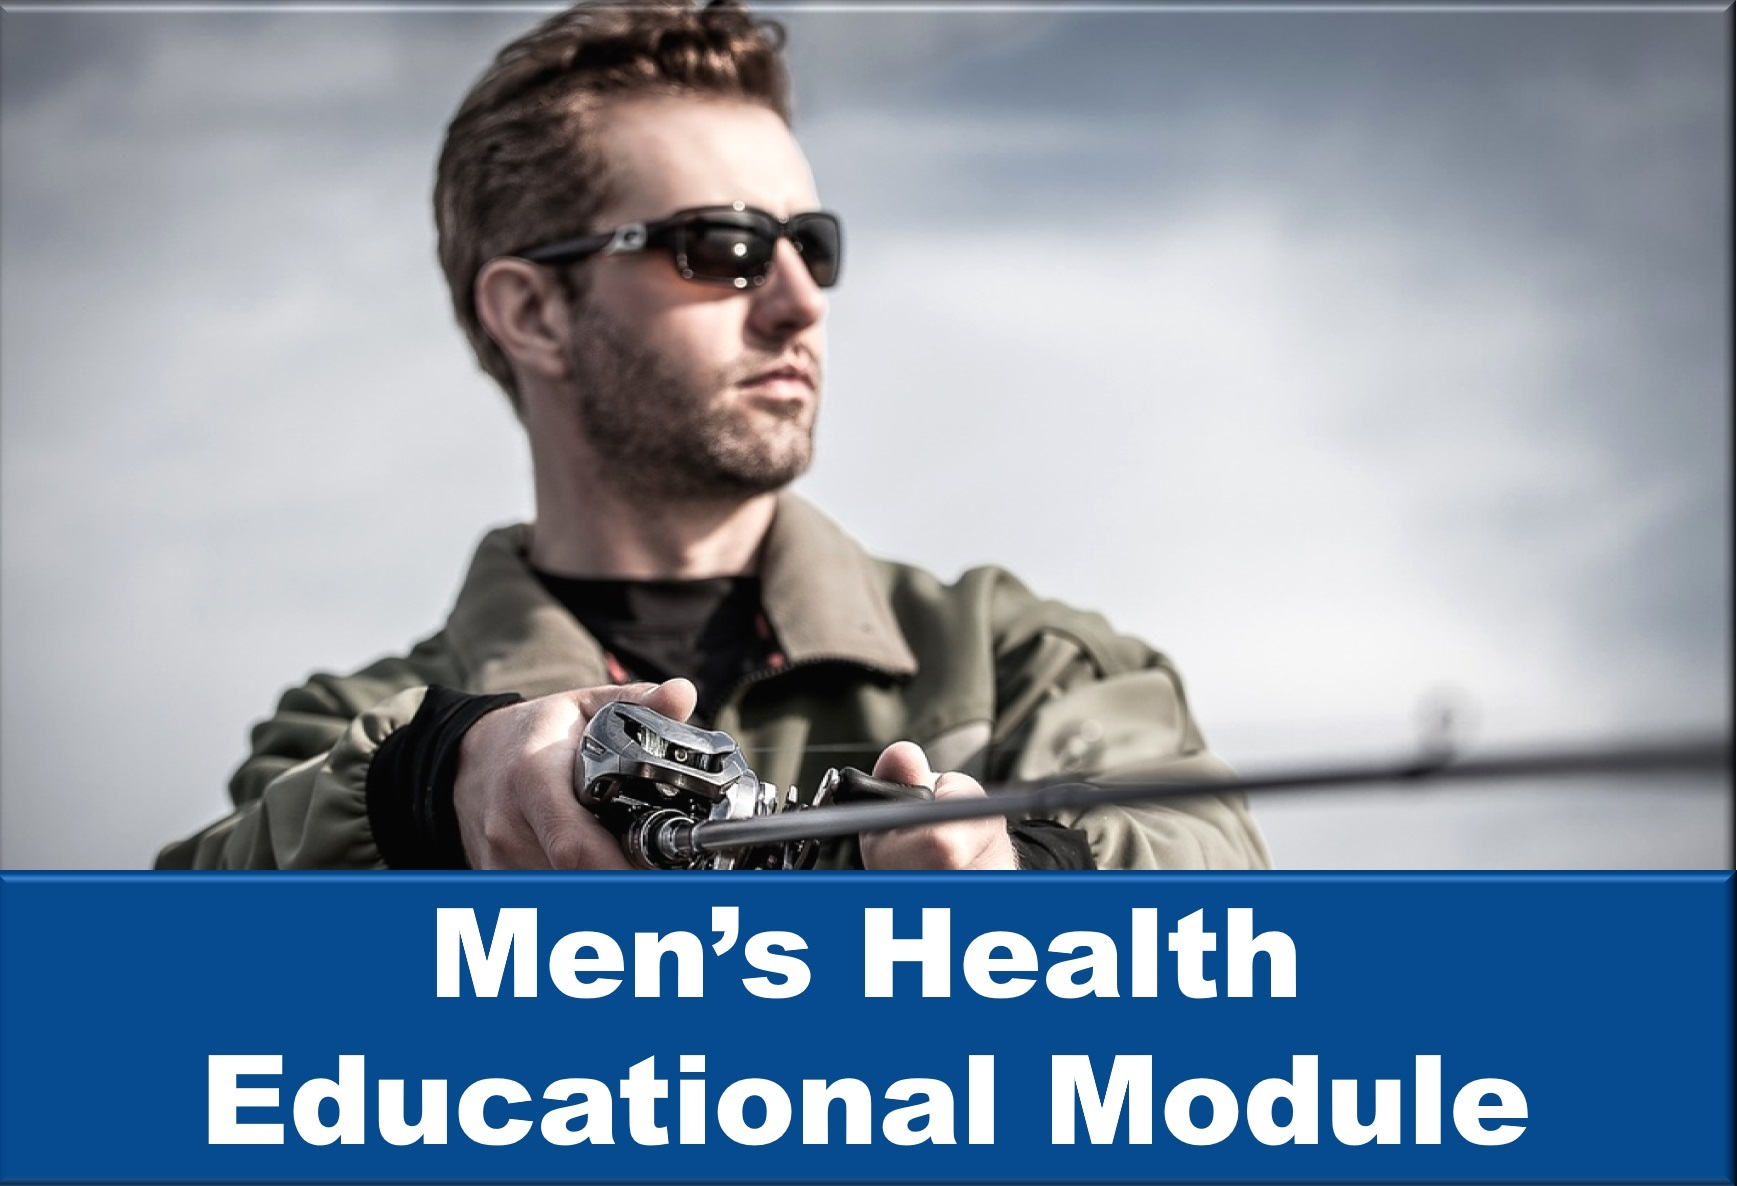 Men's Health Educational Module